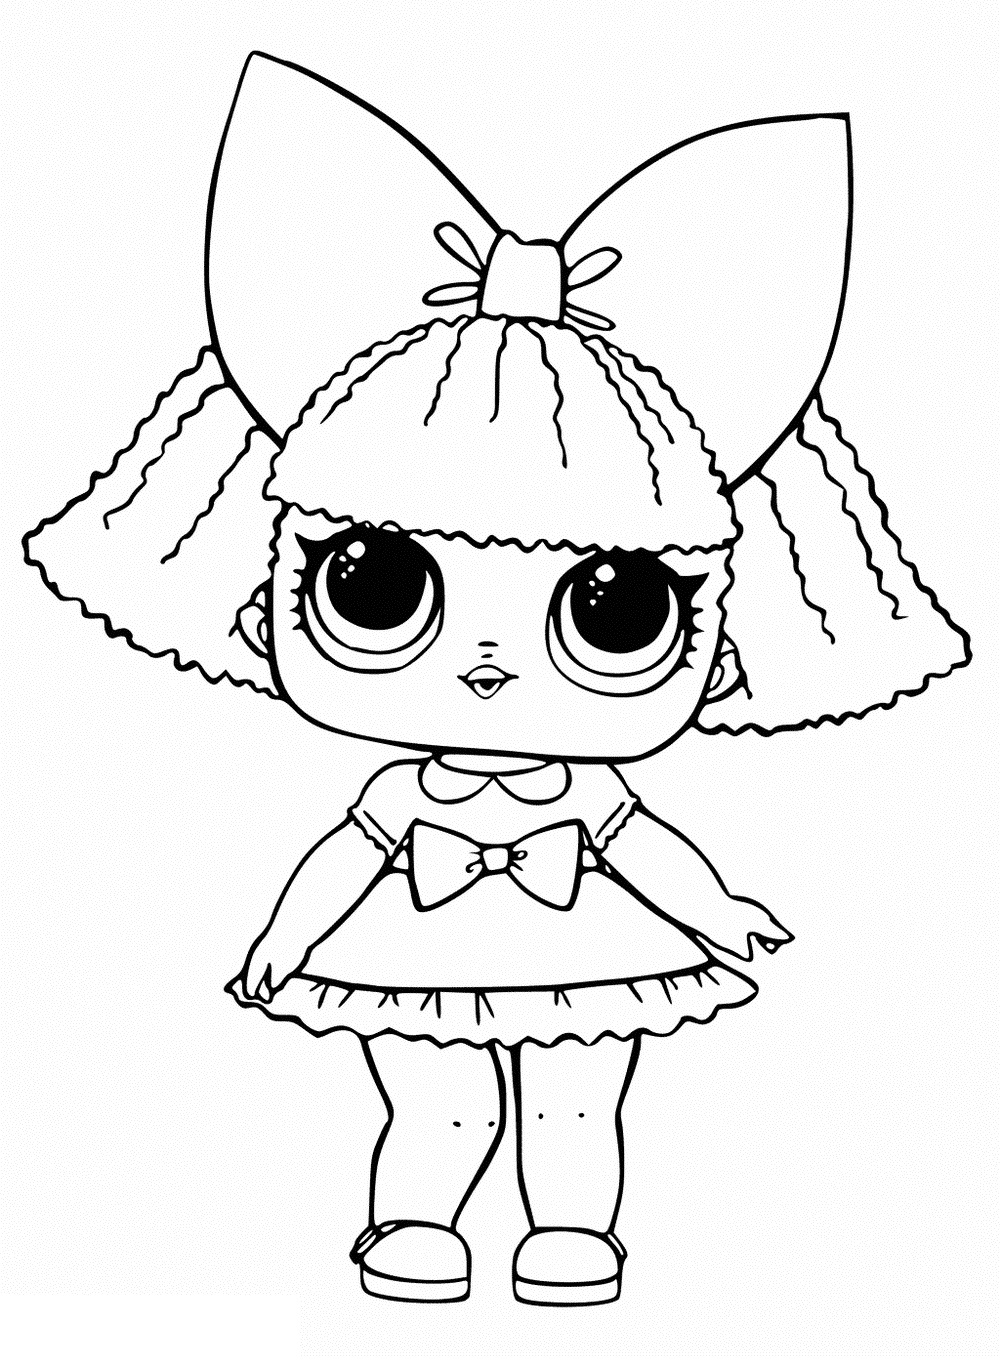 coloring pages dolls - photo#29